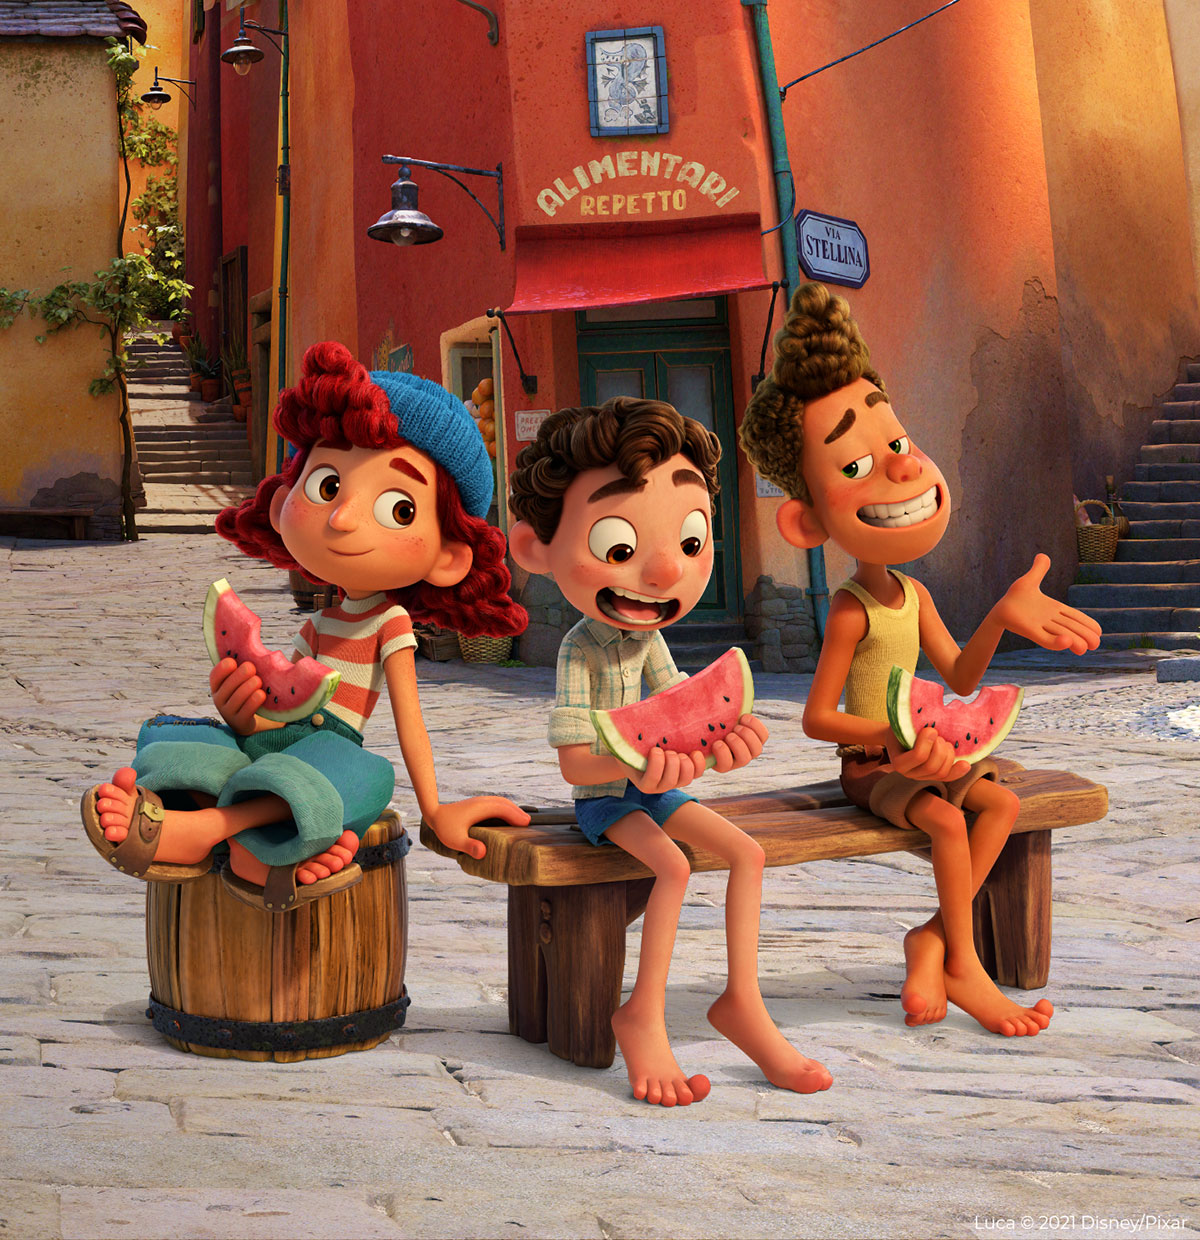 Disney Pixar's Luca characters Giulia, Luca and Alberto sitting on a bench eating watermelon in the town of Portorosso.